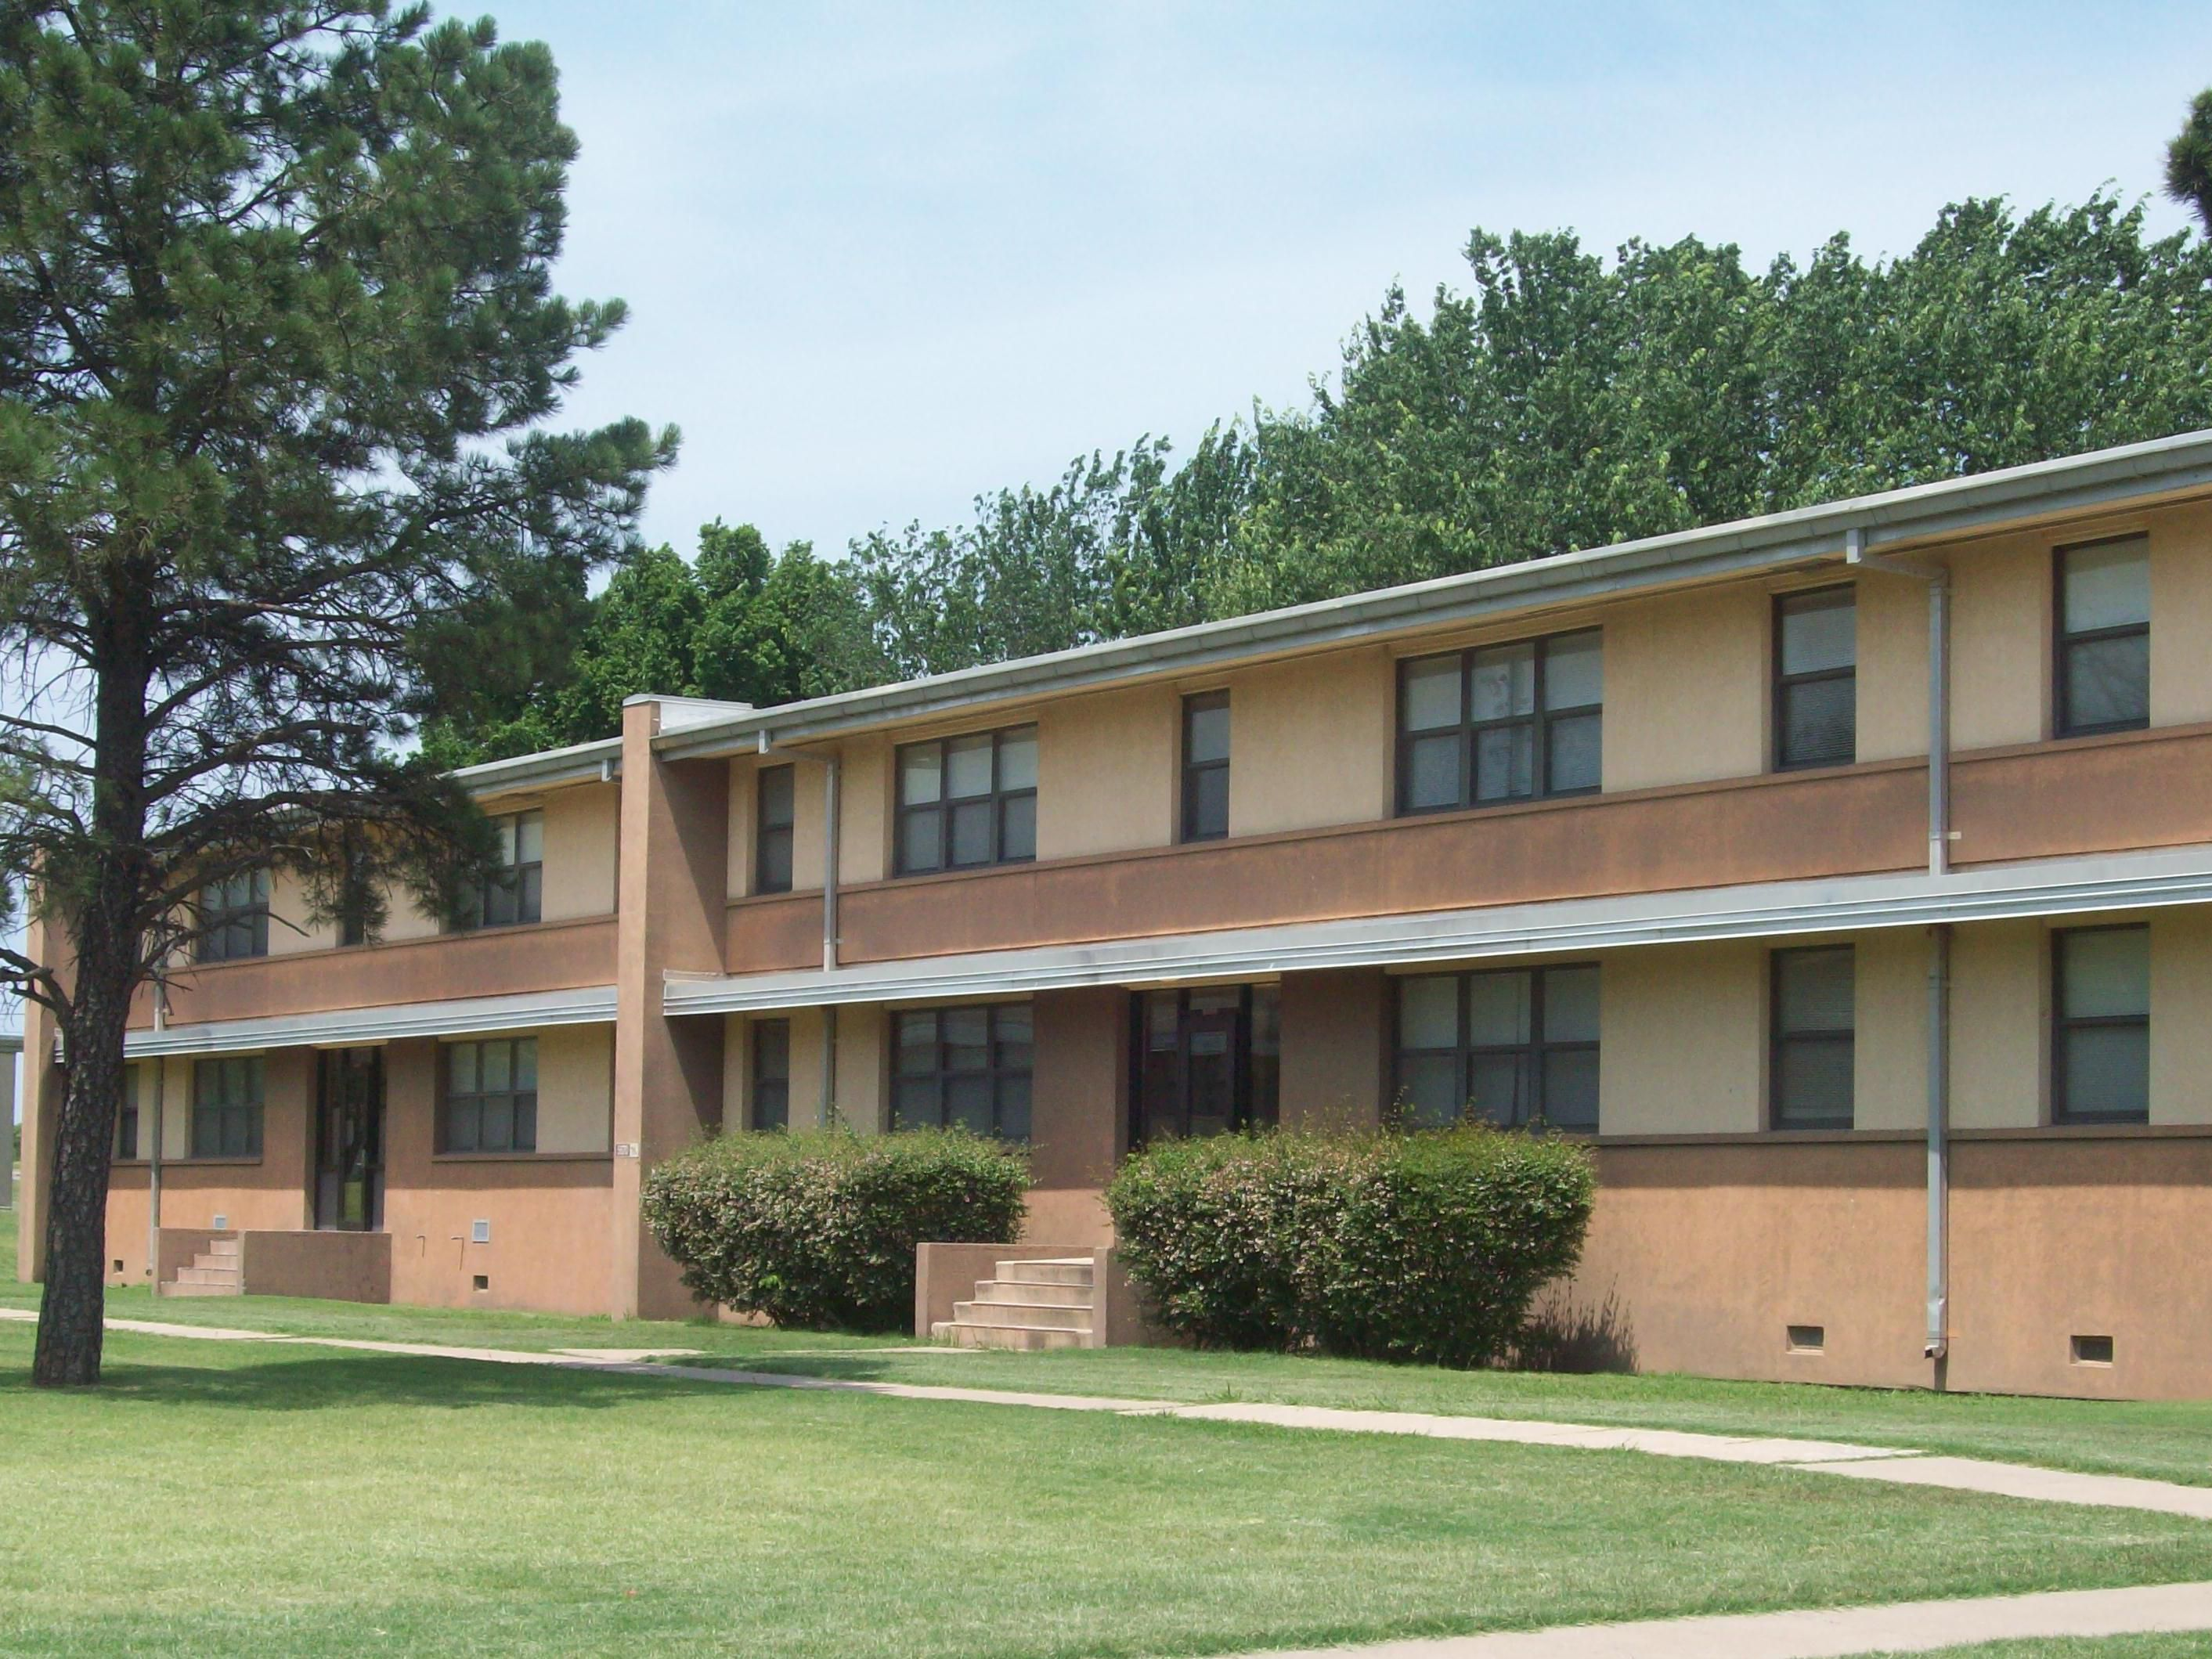 Ihg Army Hotels 5670 Series On Fort Sill